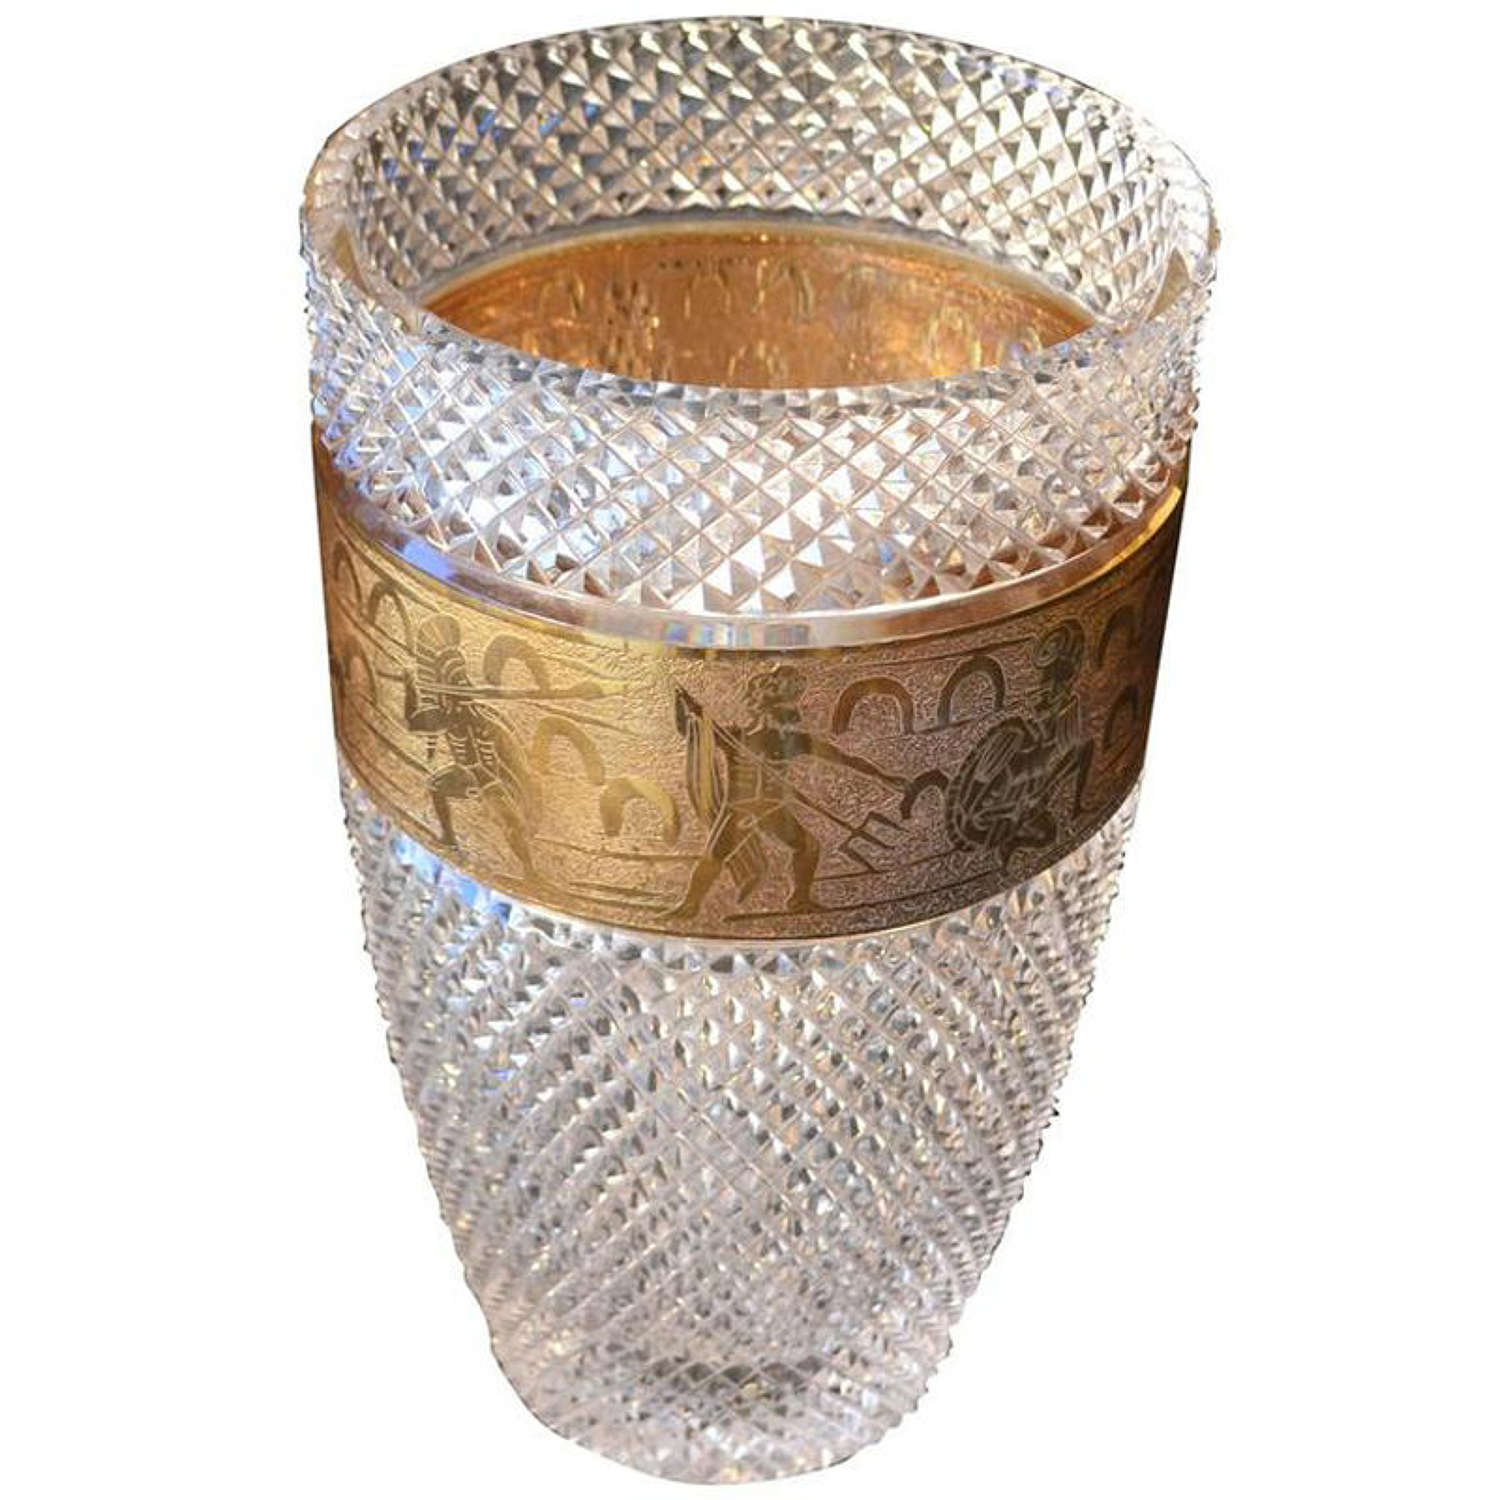 Crystal Vase by Moser with Gilded Frieze of warriors